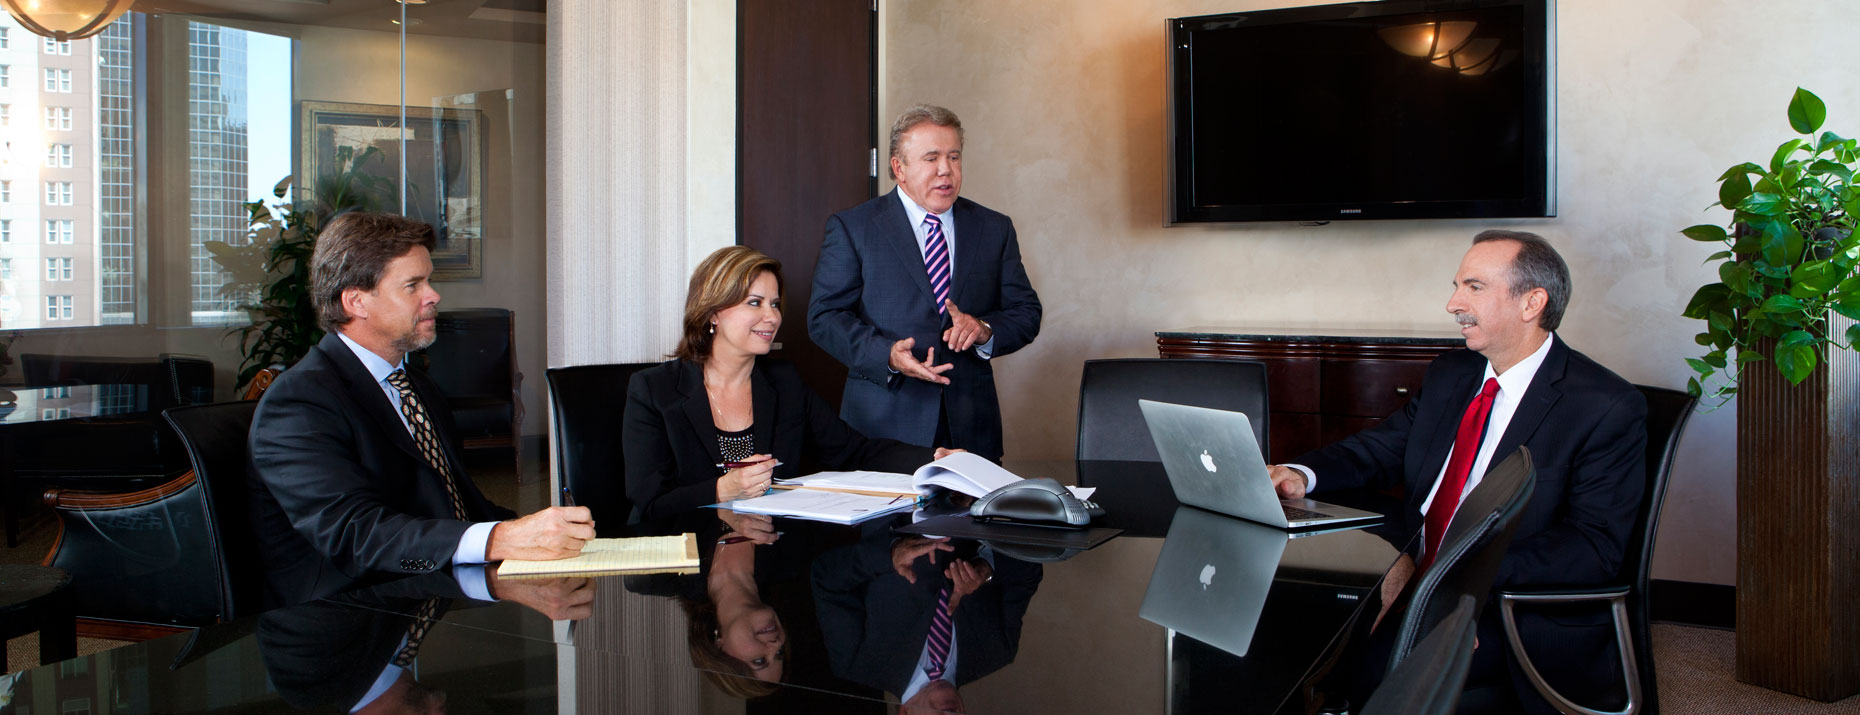 Corporate Photographers San Diego Office Lifestyle Photography